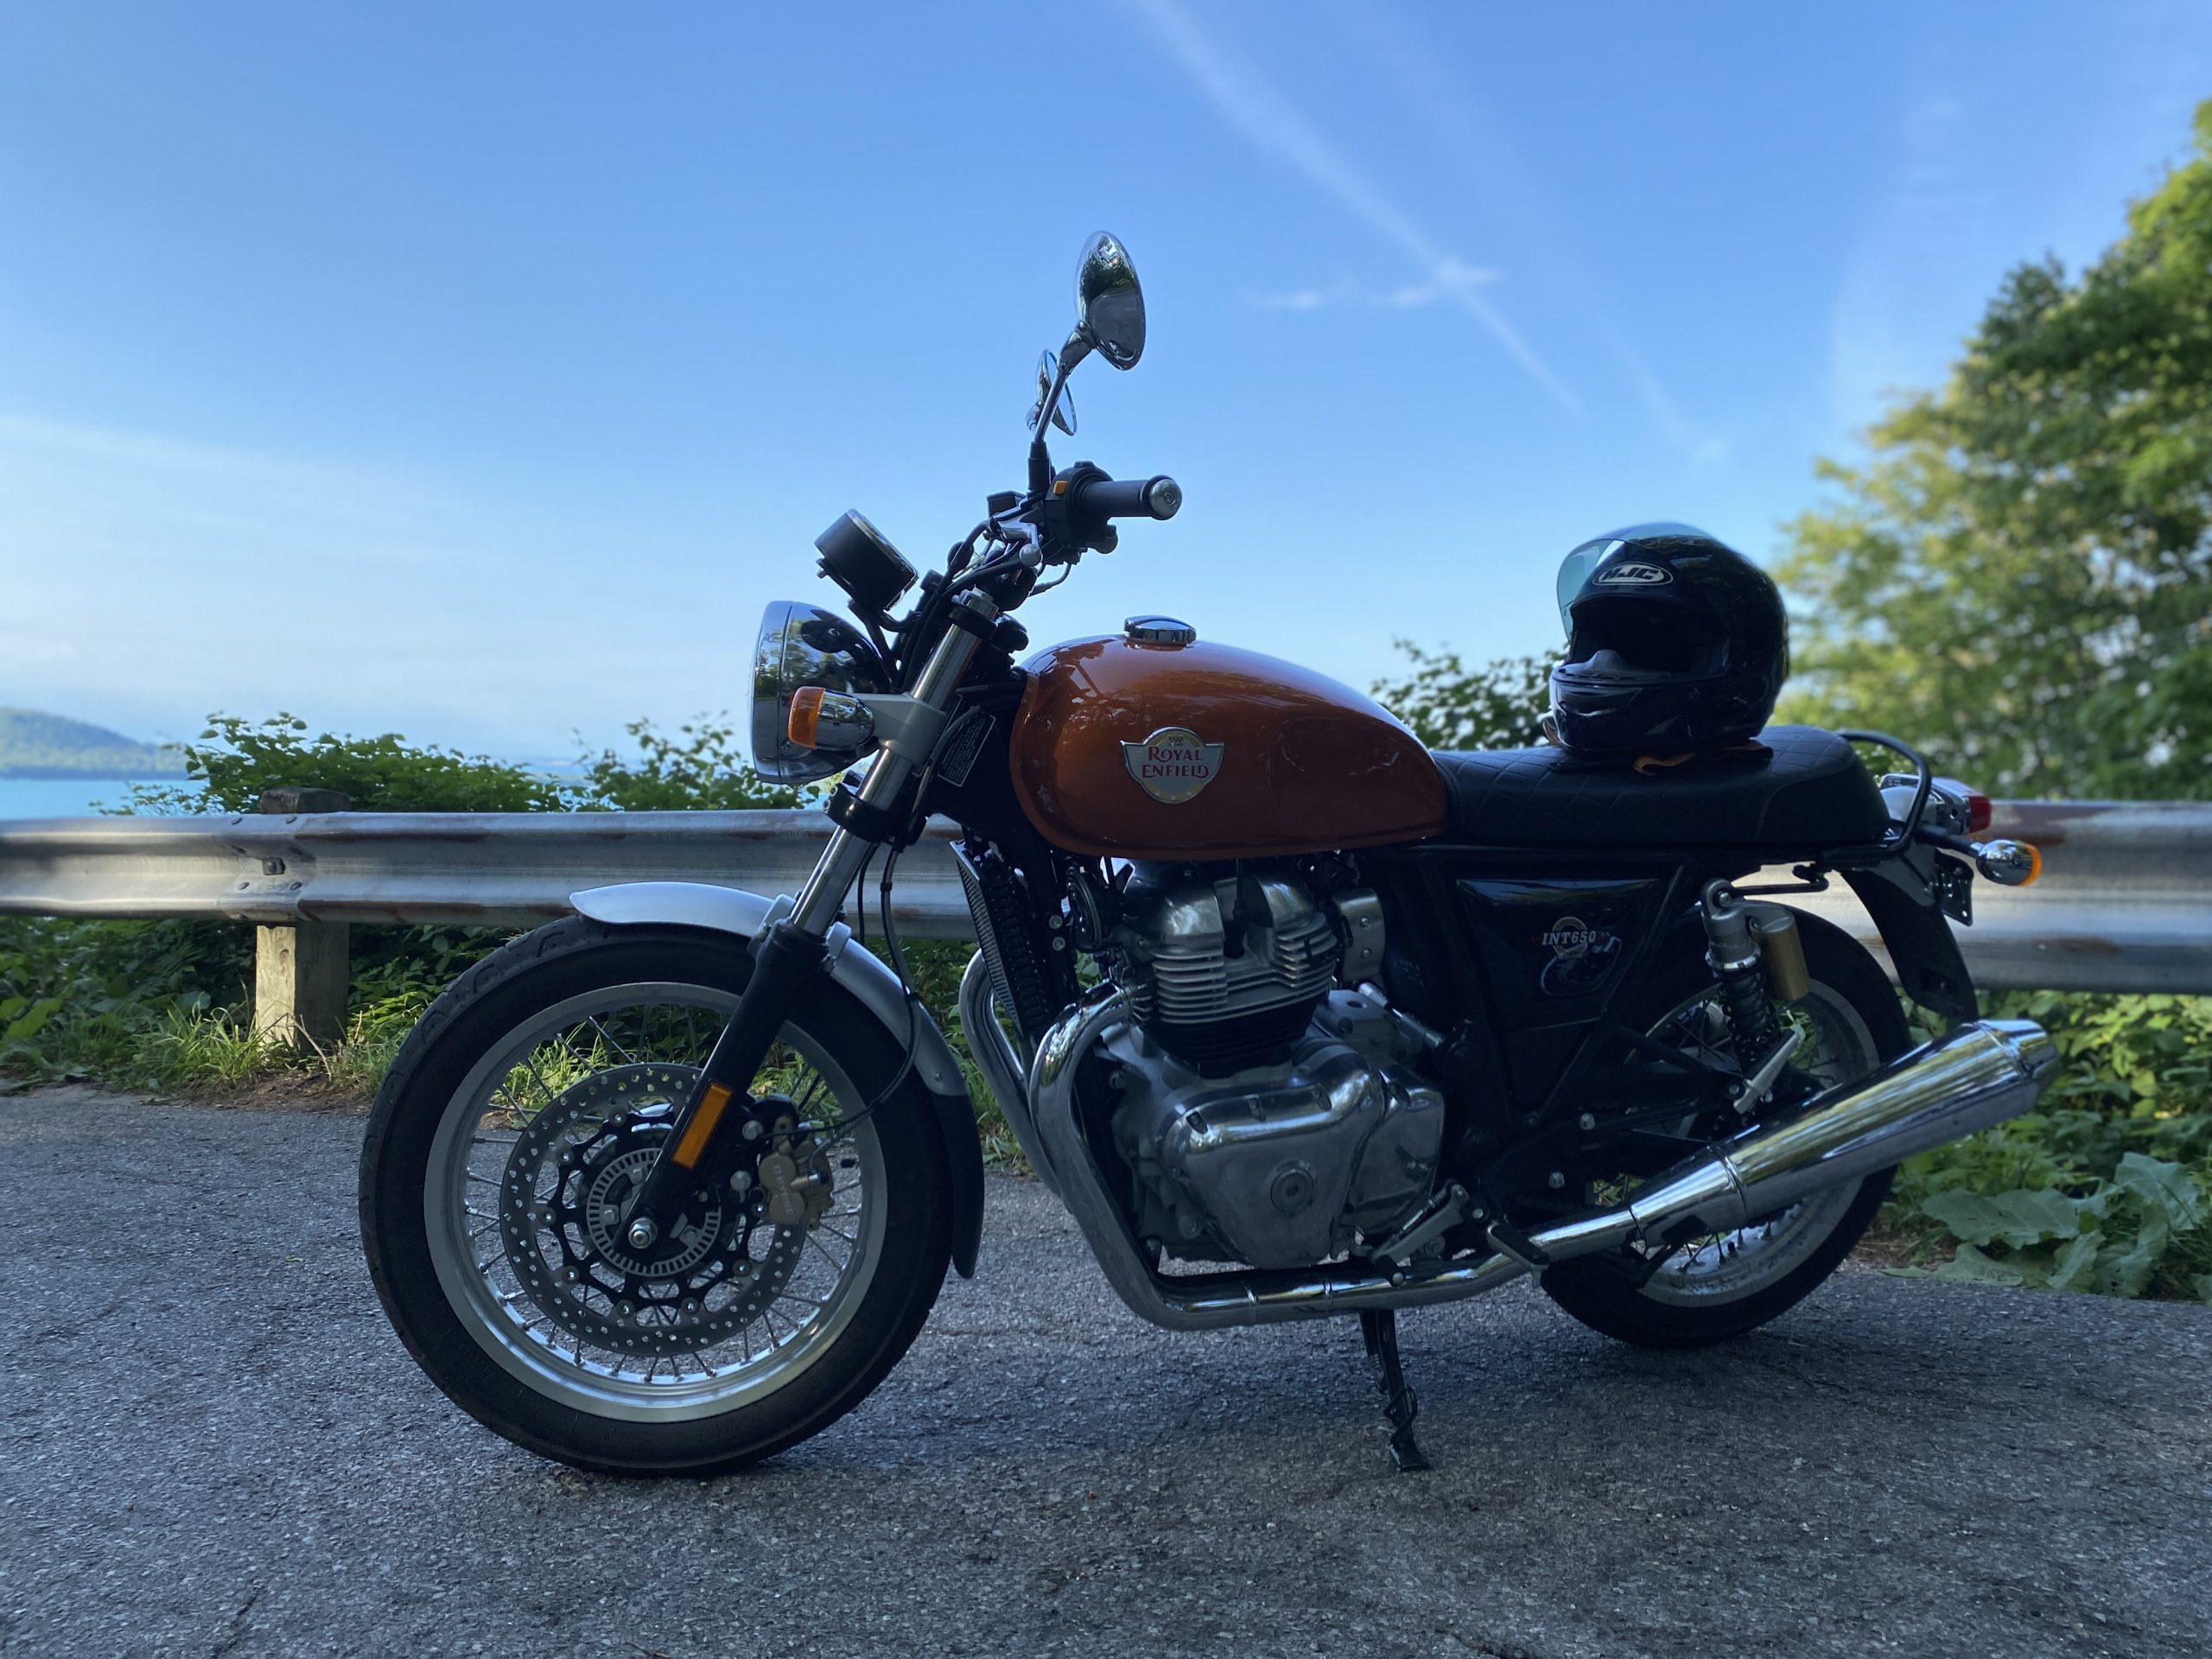 Royal Enfield INT650 at scenic overlook full bike